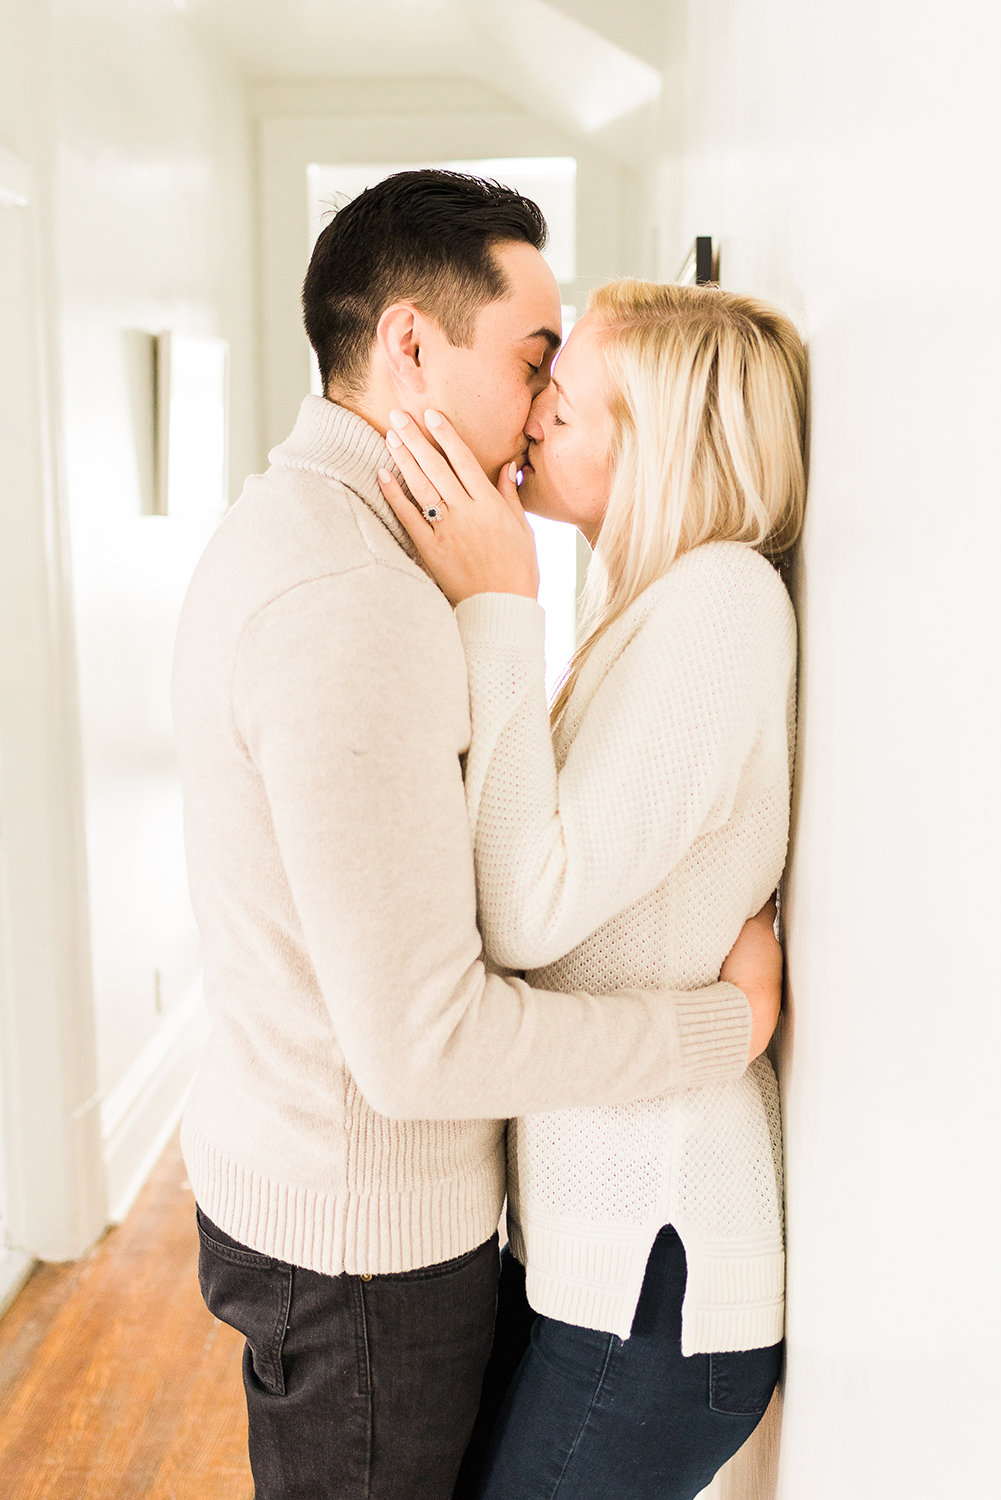 in-home-engagement-session-denver-engagement-photographer_69.jpg